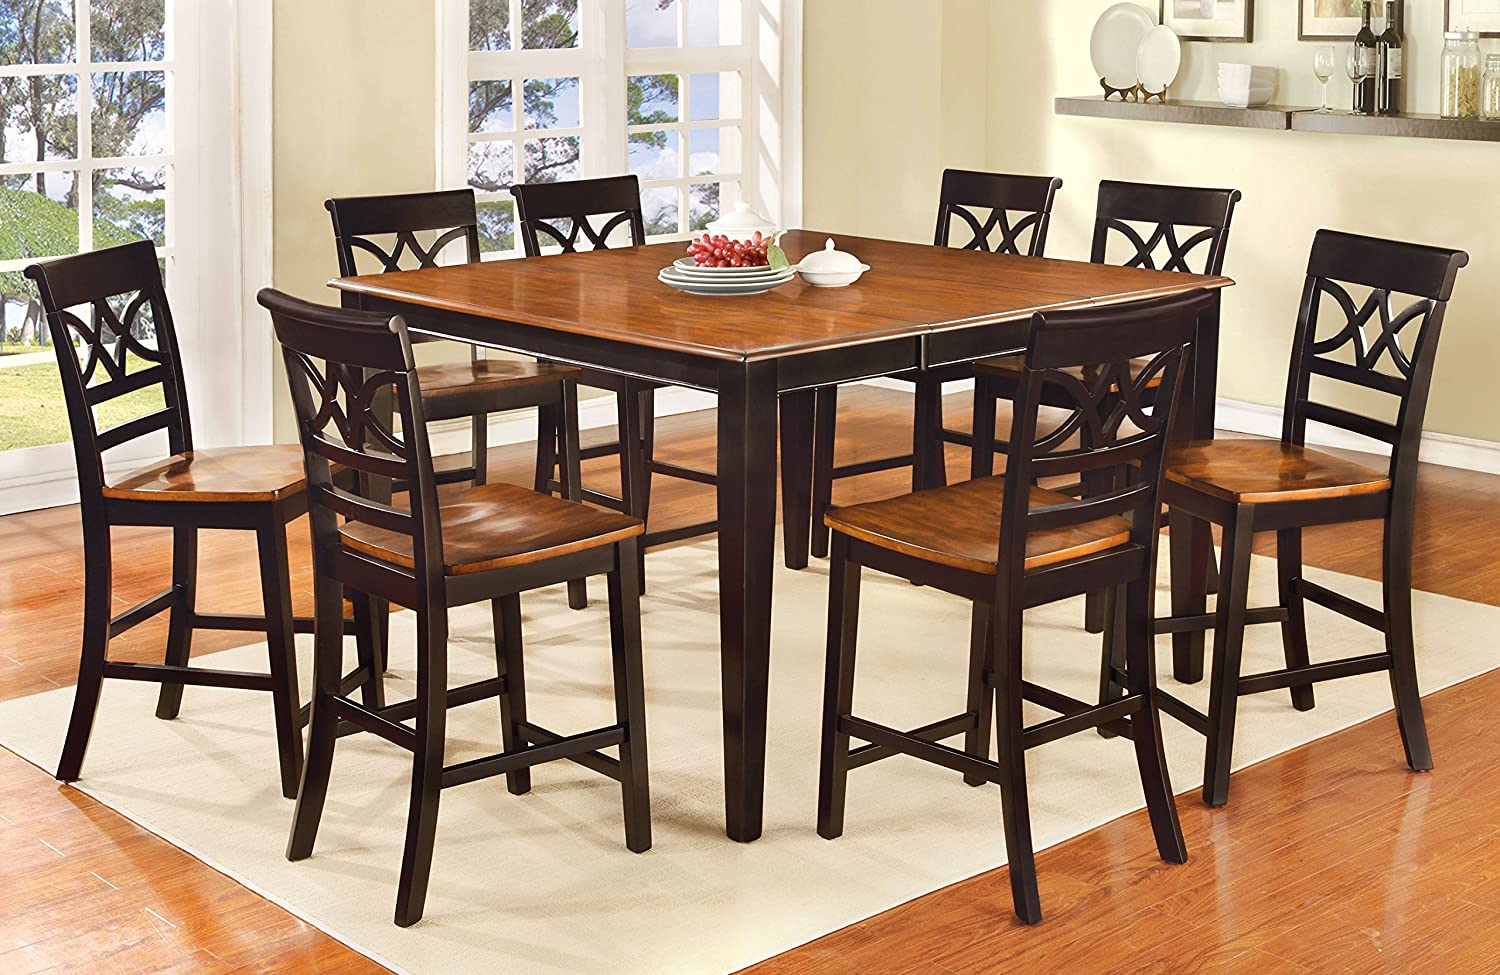 Amazon.com - Furniture of America Cherrine 9-Piece Country Style Pub Dining Set Oak/Black - Table u0026 Chair Sets & Amazon.com - Furniture of America Cherrine 9-Piece Country Style Pub ...